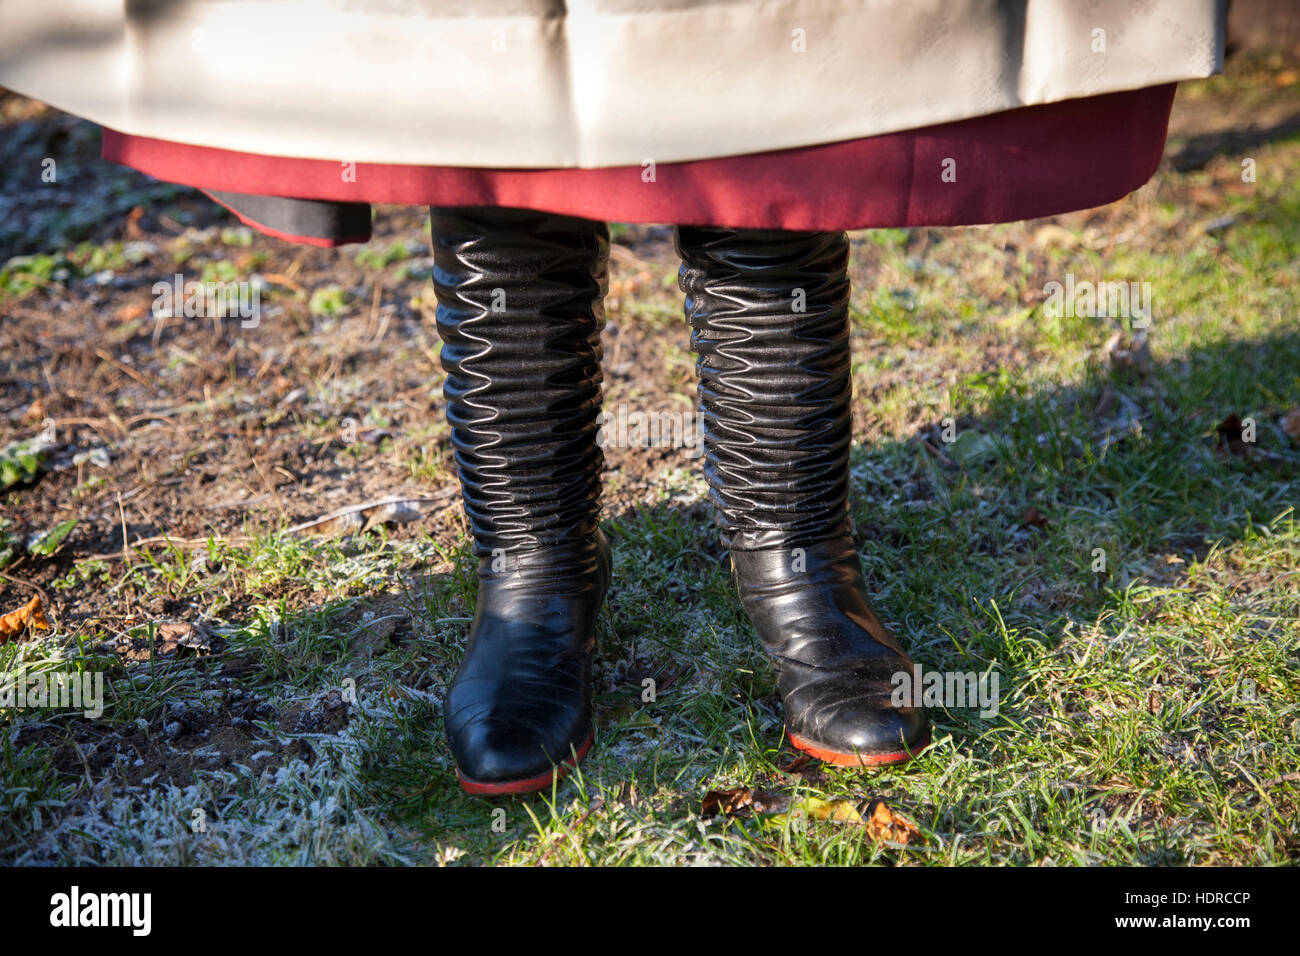 Woman from the Lanzhot region of southern Moravia wears big skirts and  boots as part of her traditional costume - Stock Image